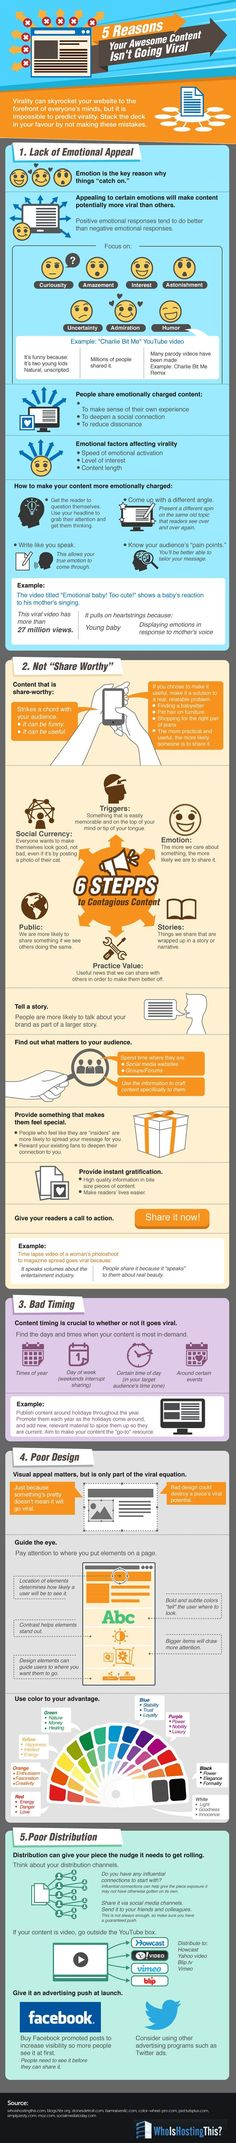 5 Reasons Your Awesome Content Isn't Going Viral [Infographic] : MarketingProfs Article